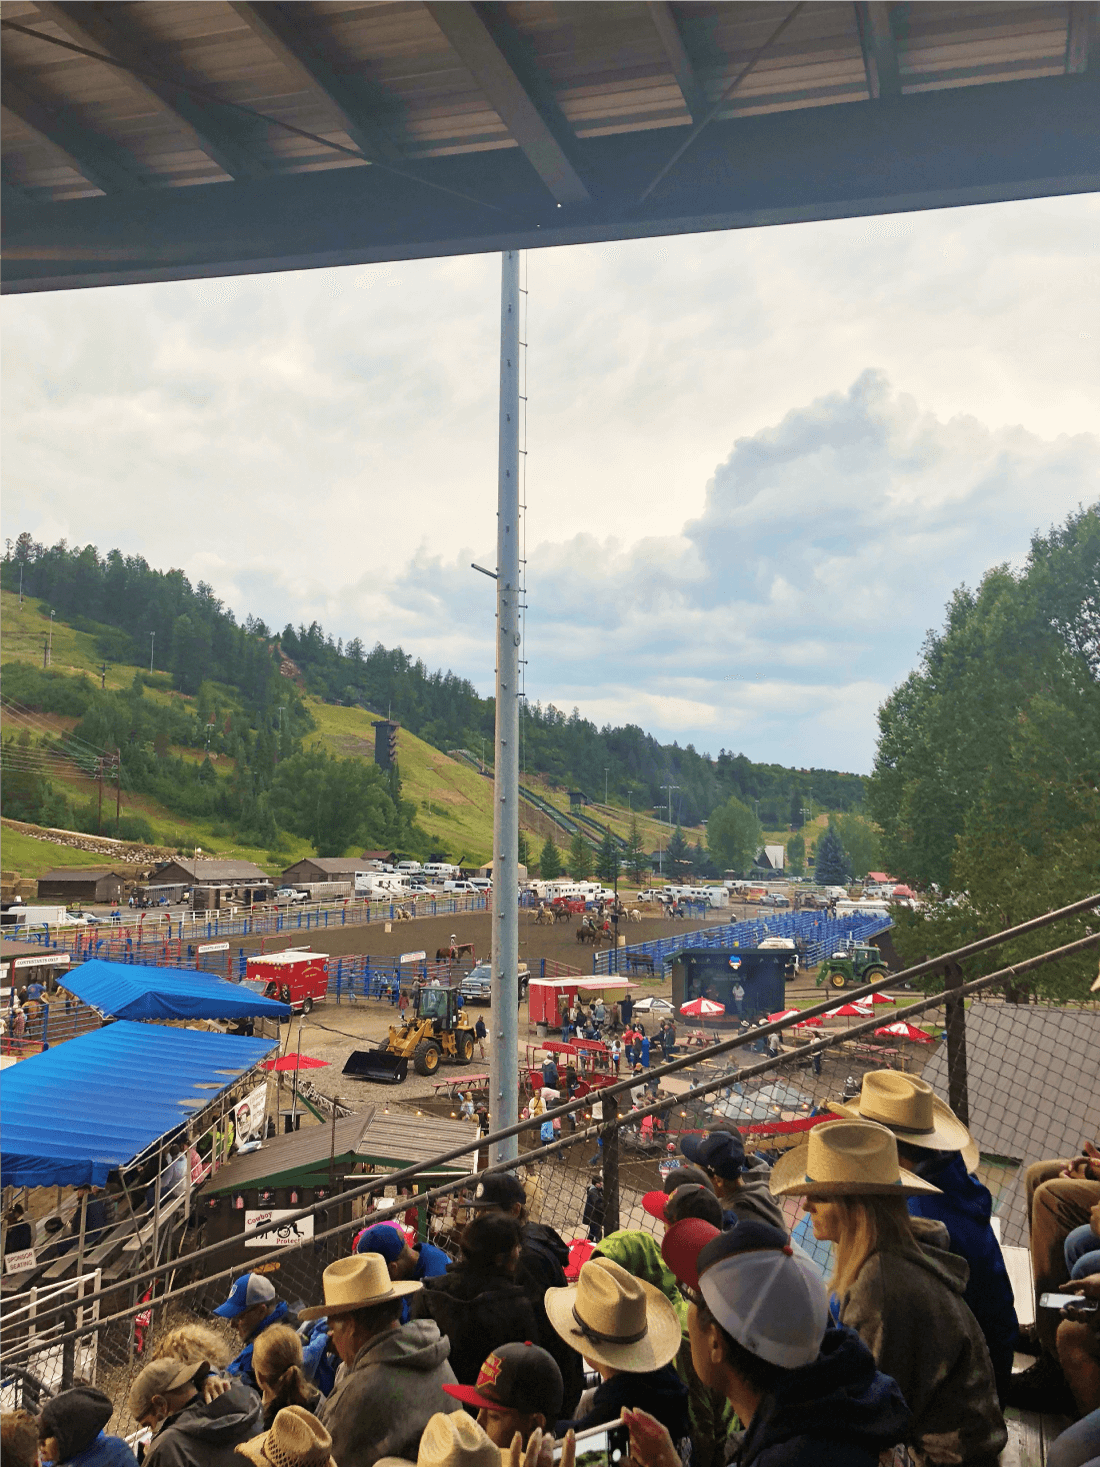 Going to the rodeo at Steamboat Springs